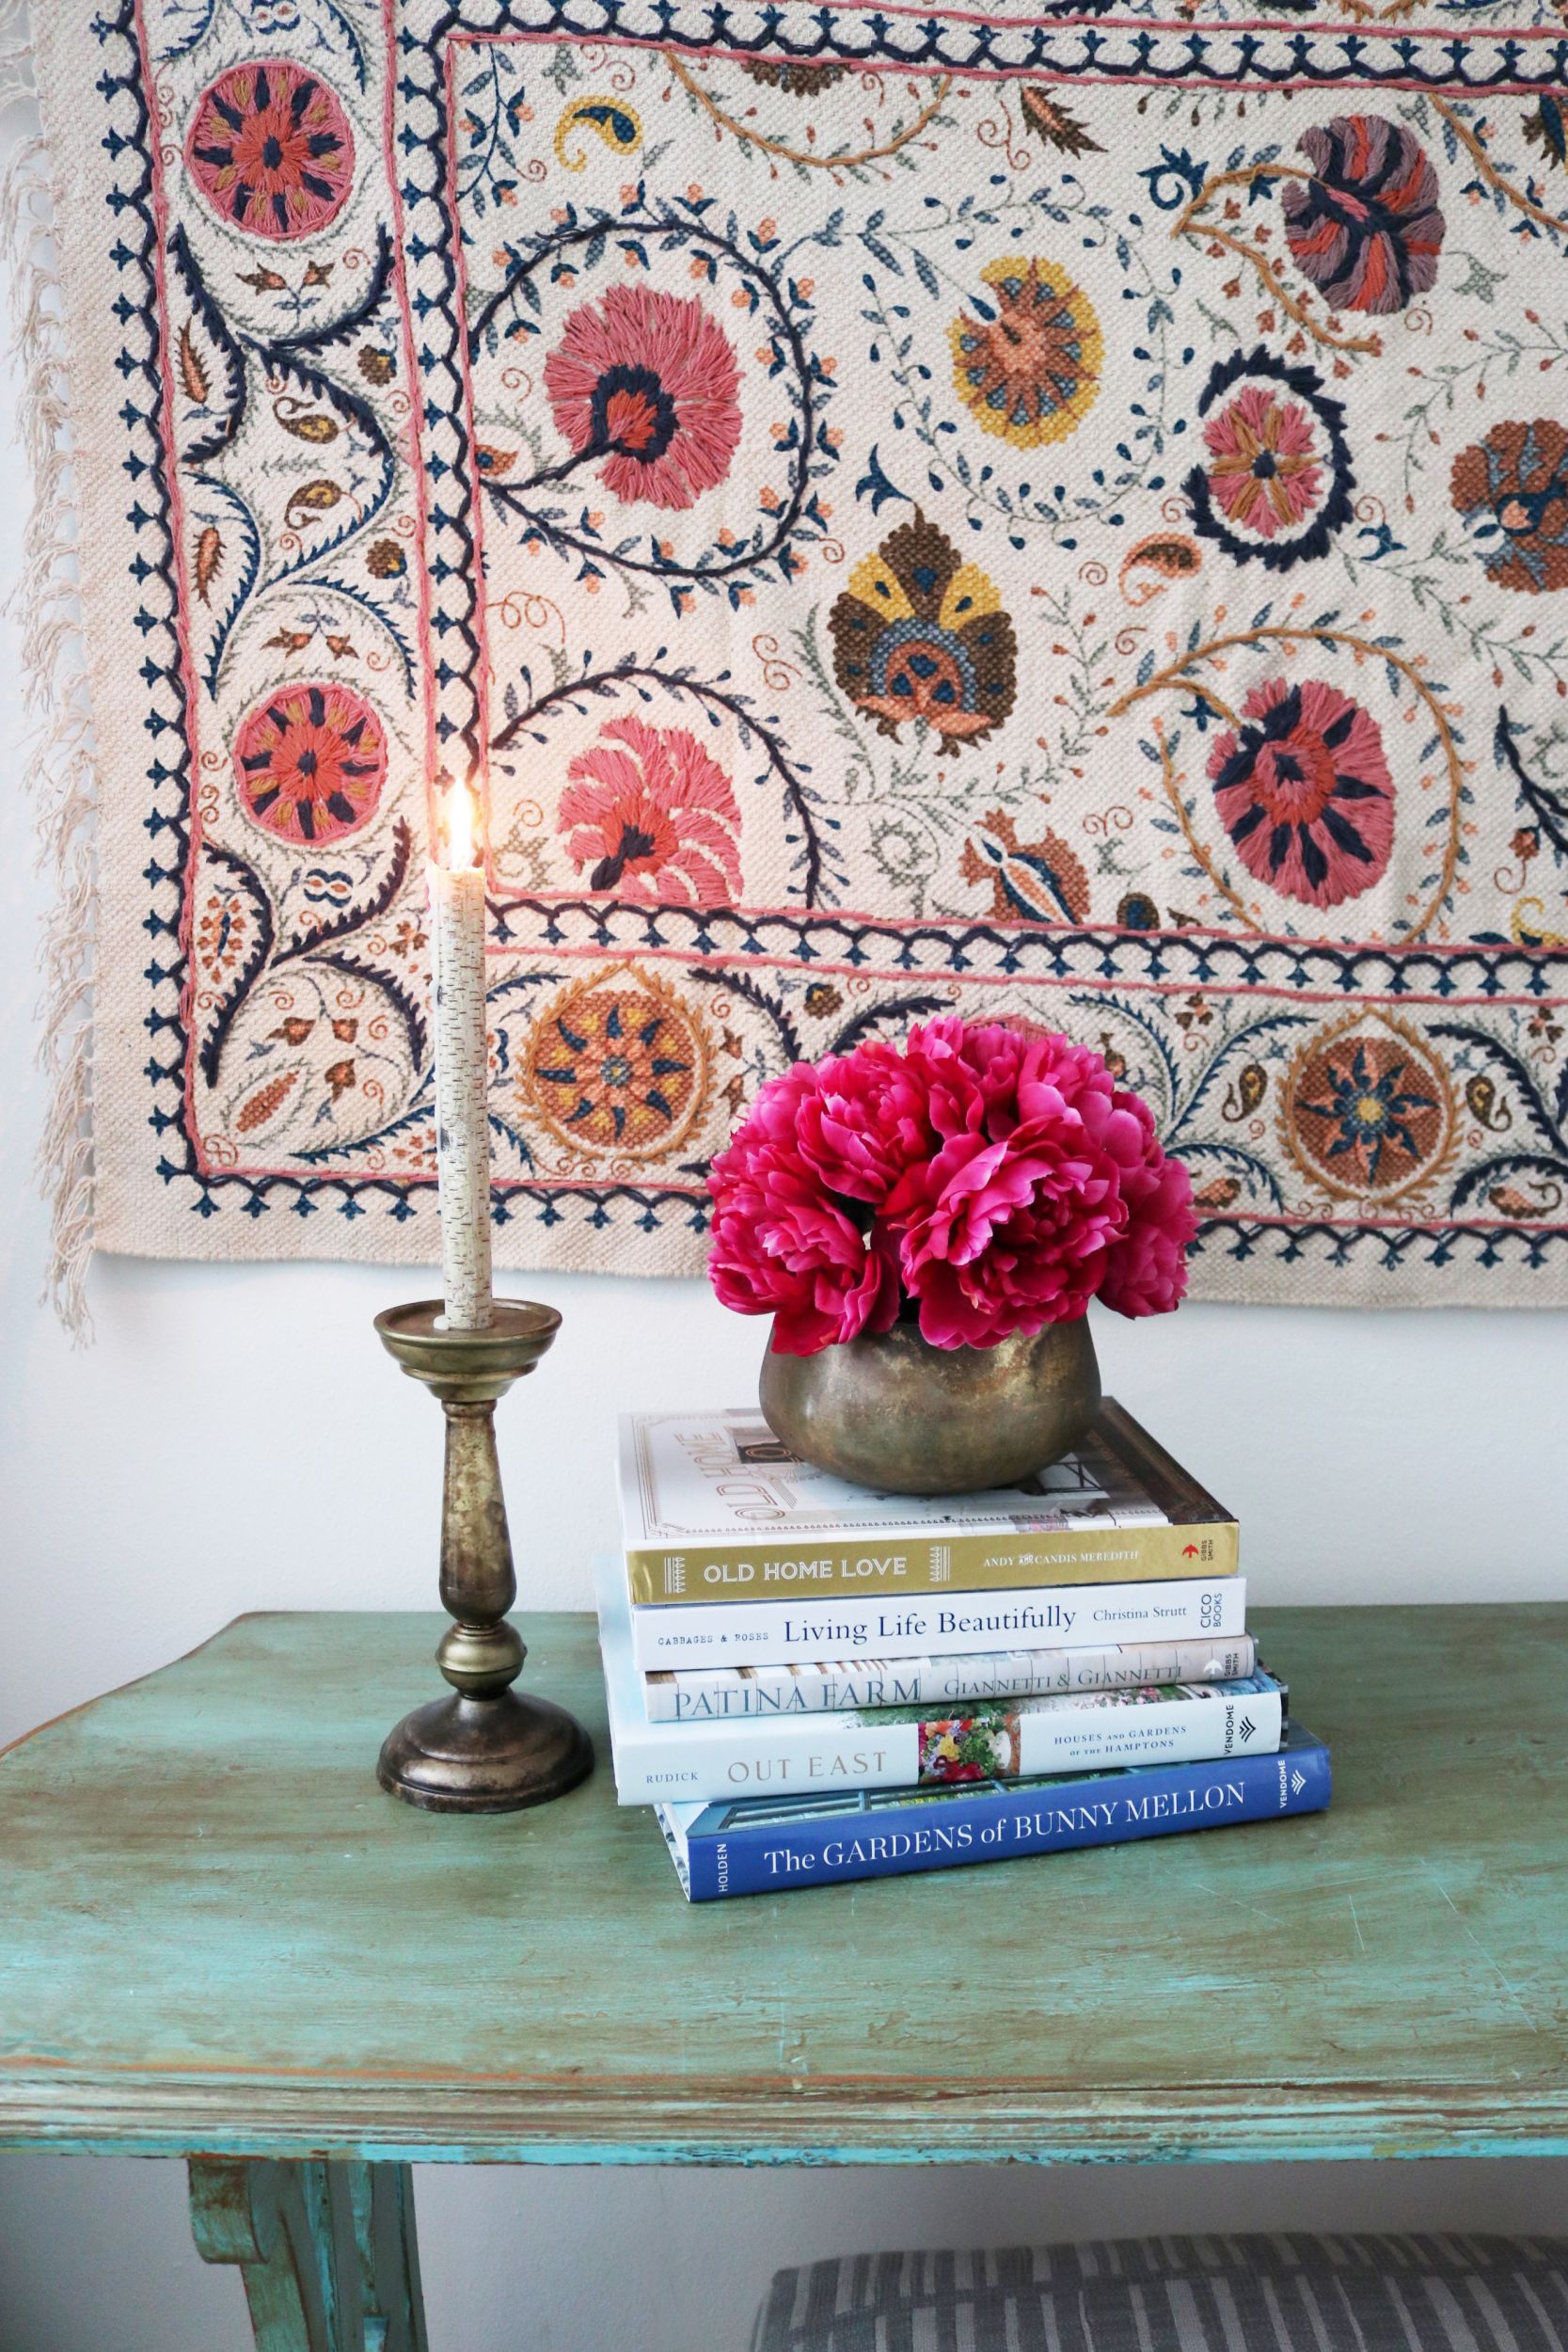 Hang a Rug on a Wall + Sparking Joy